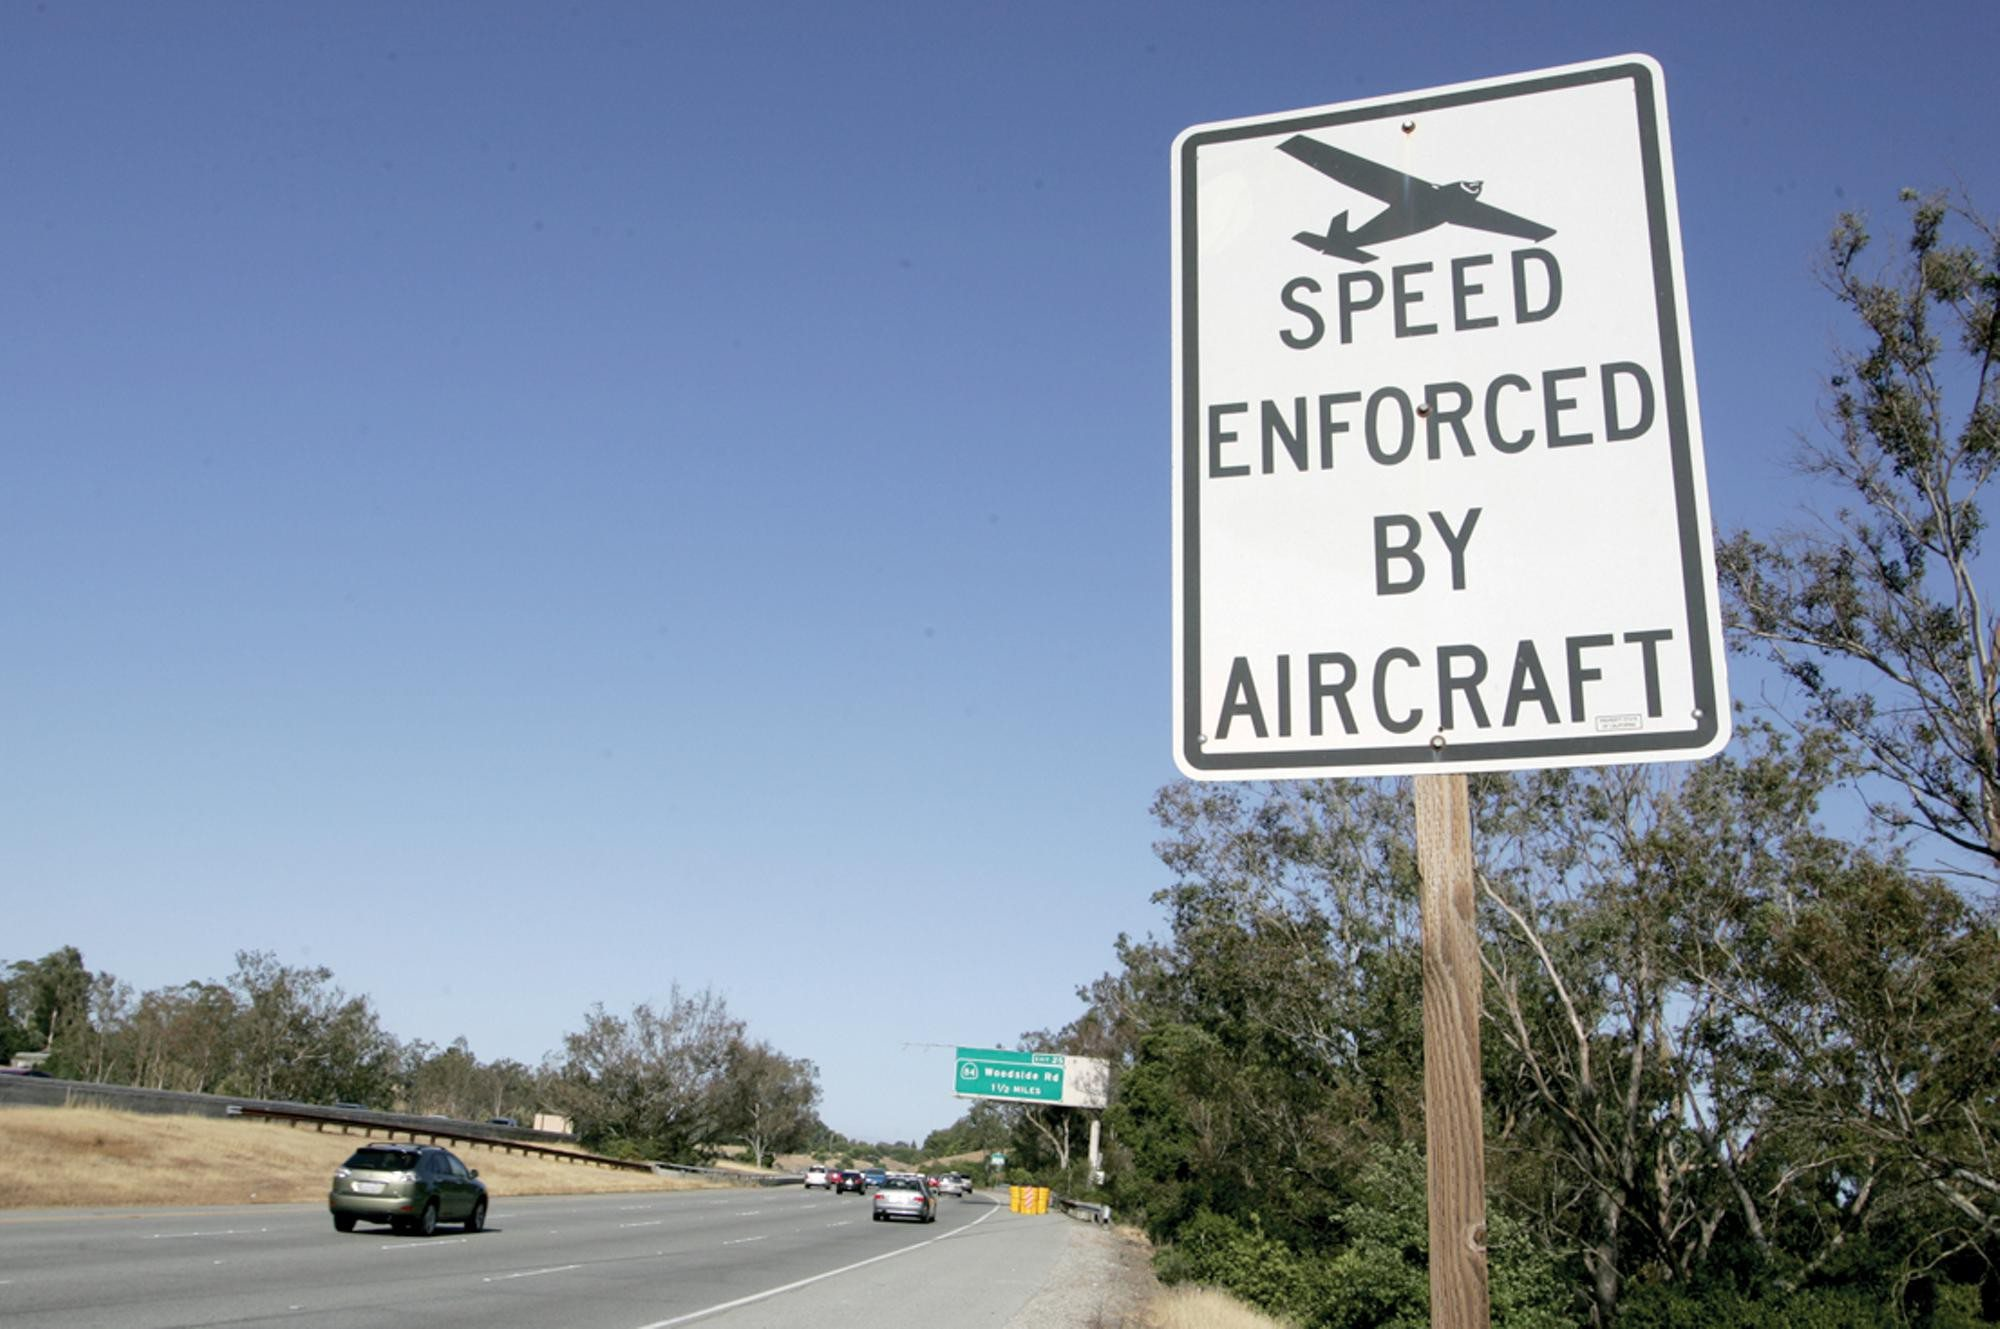 Mike Koozmin/The S.F. ExaminerOnly 362 speeding citations were made by air out of 165